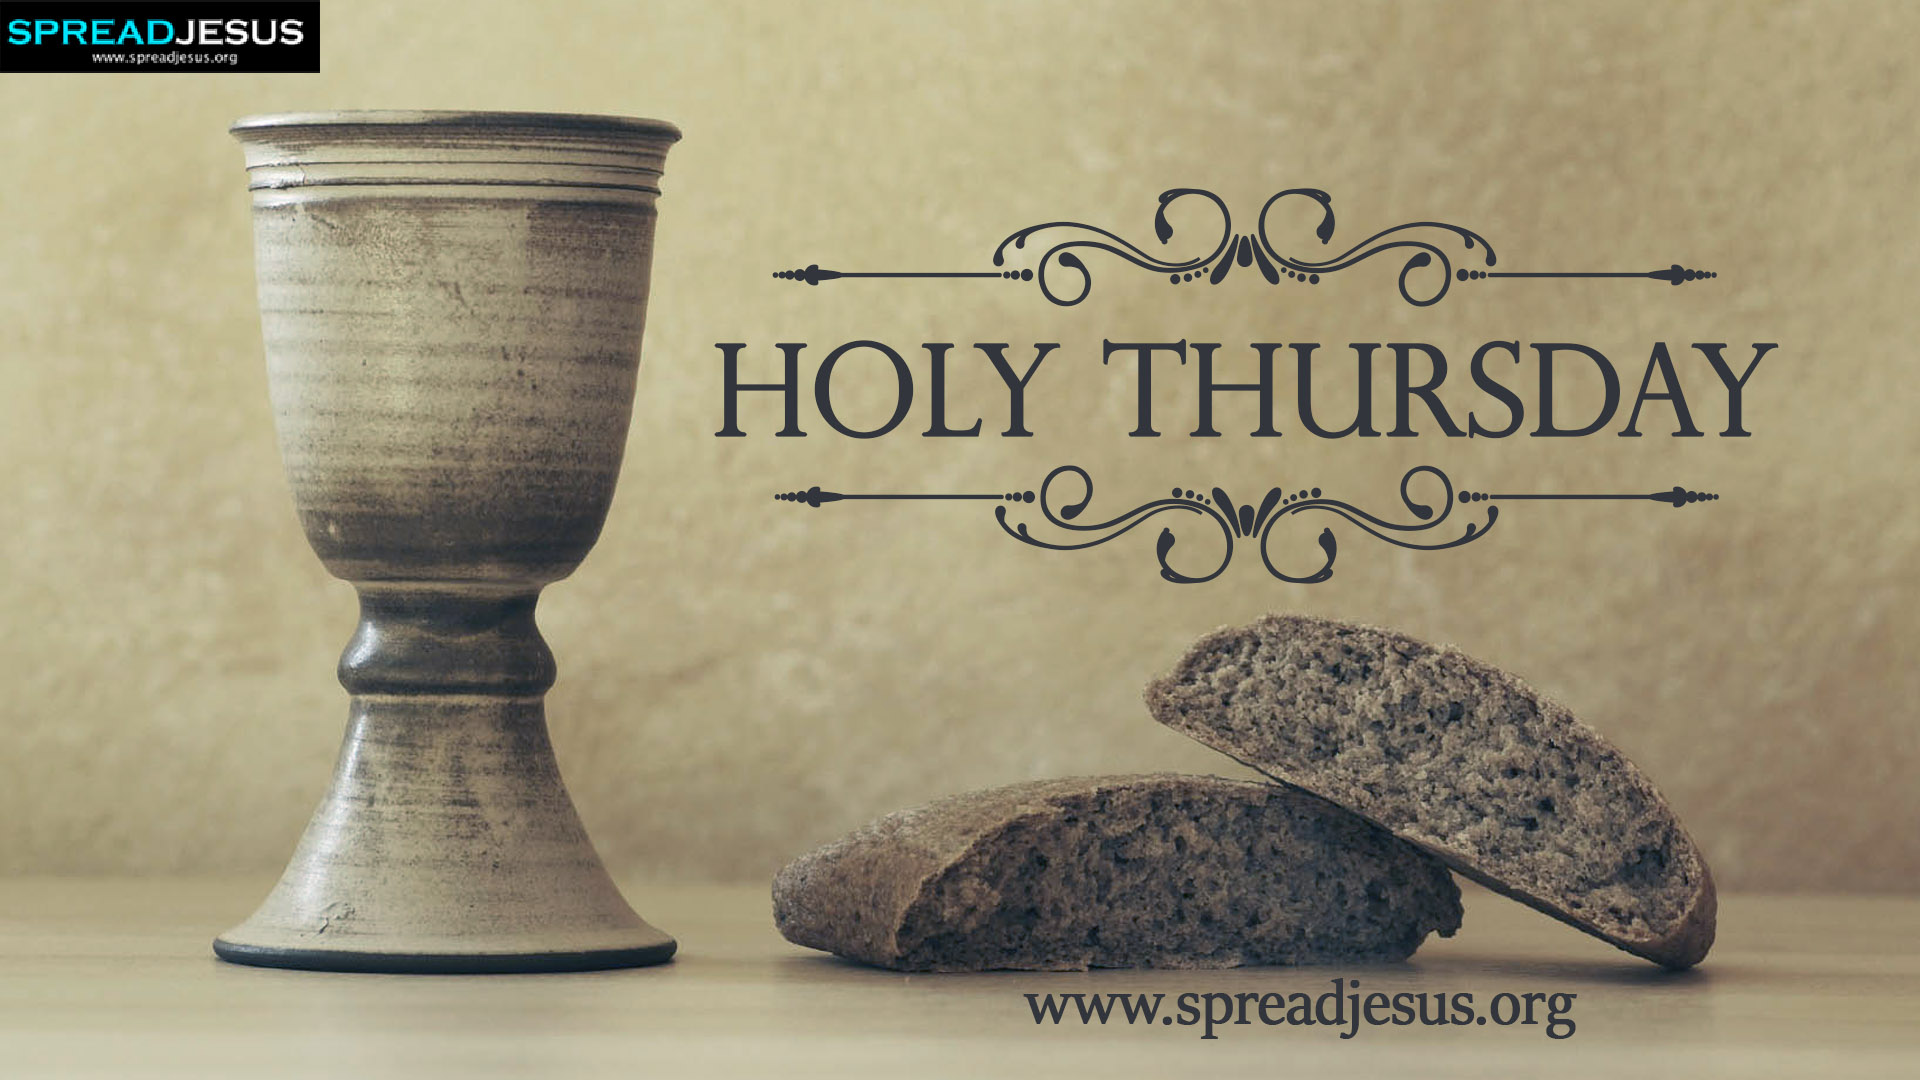 holy thursday photos lbc9 news